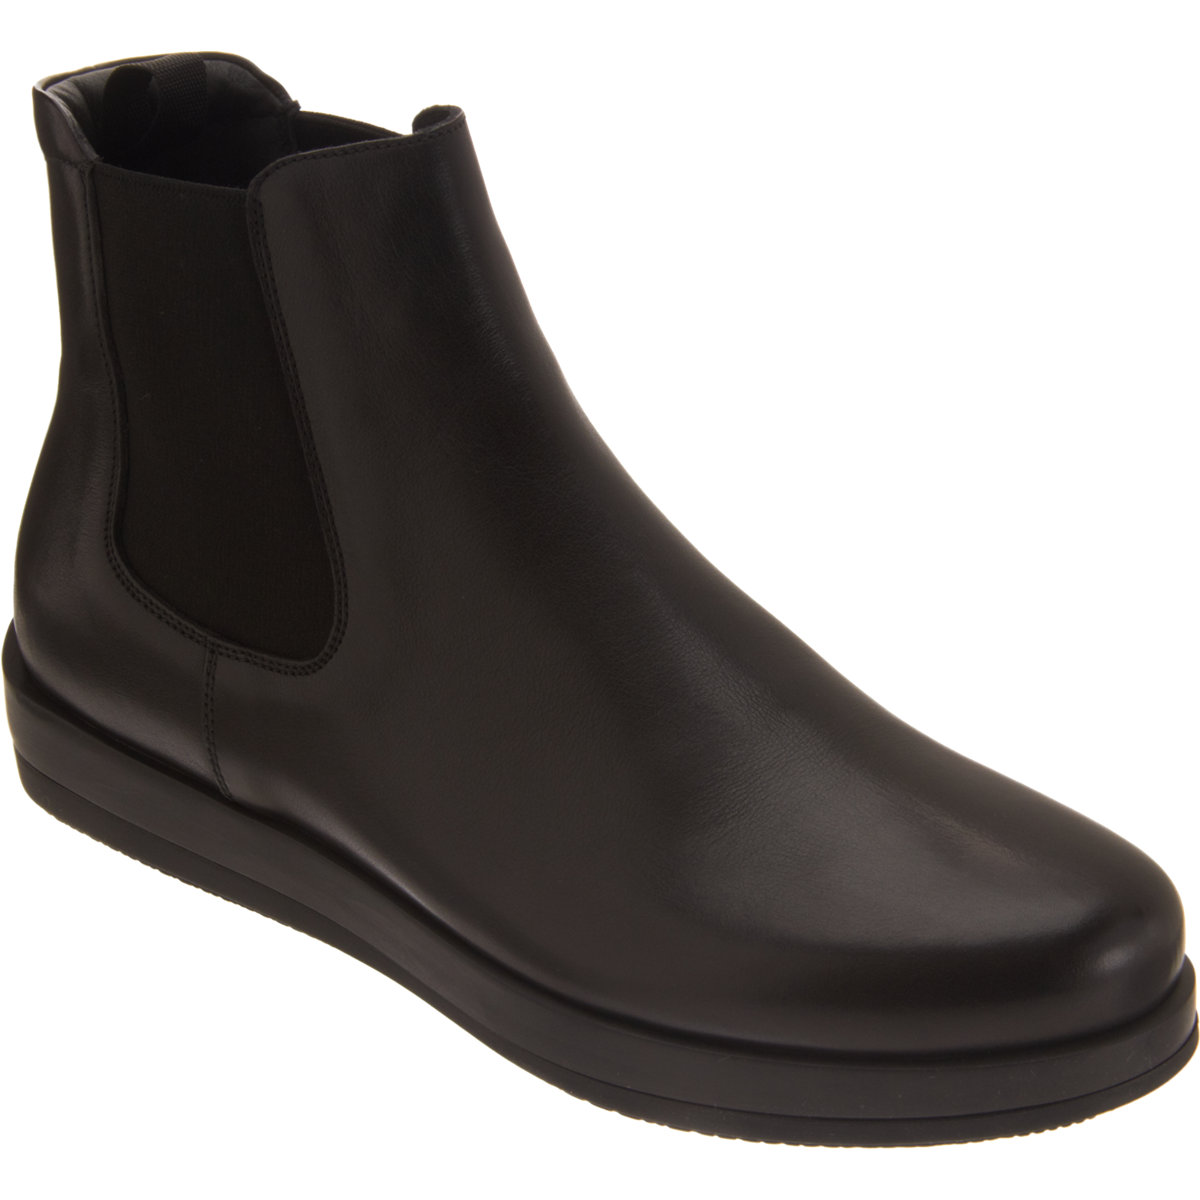 prada wedge chelsea boot in black for men lyst. Black Bedroom Furniture Sets. Home Design Ideas